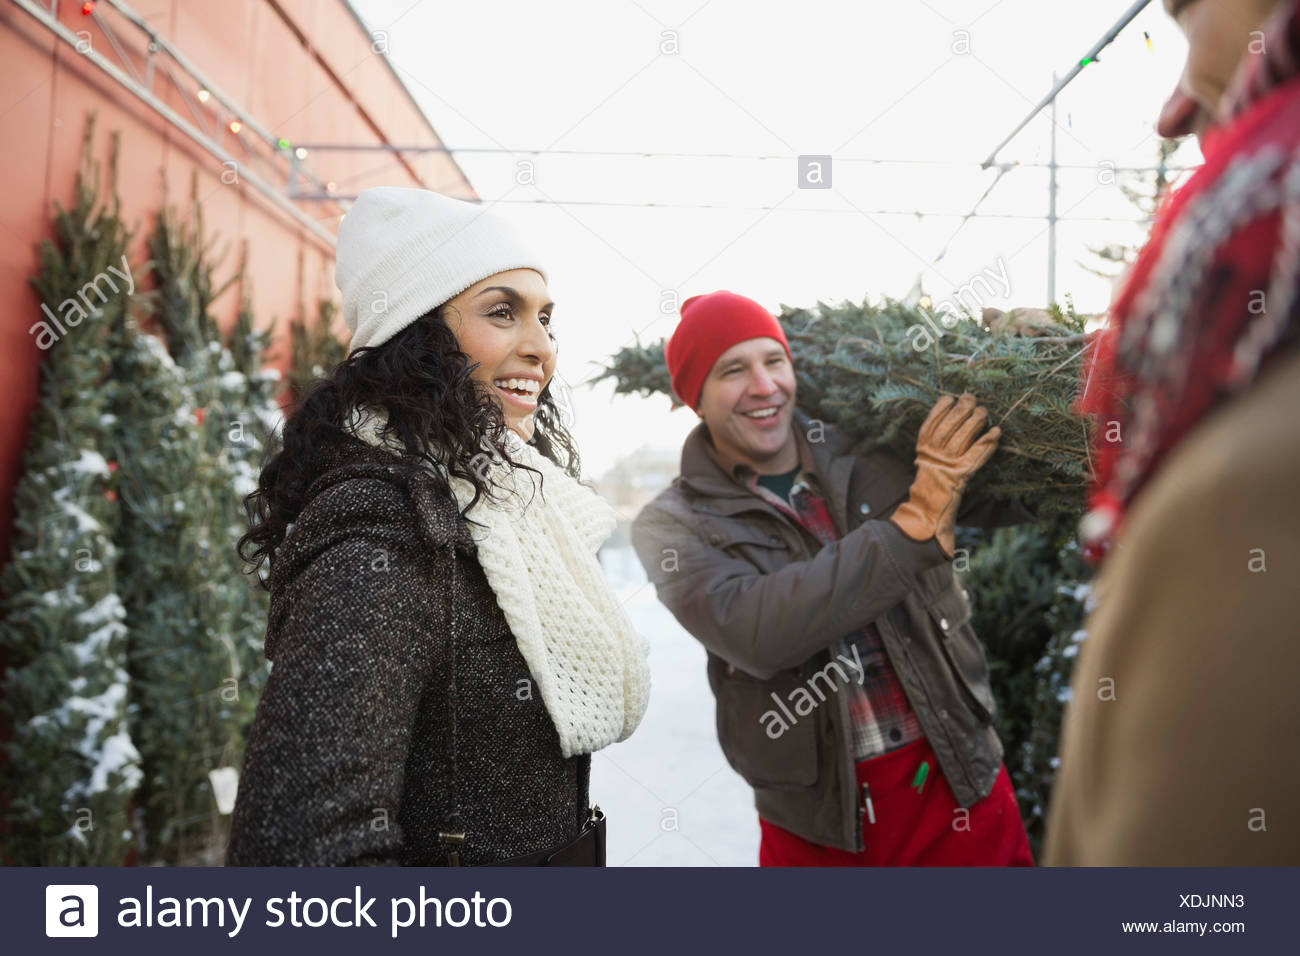 Woman with tree lot owner carrying Christmas tree - Stock Image